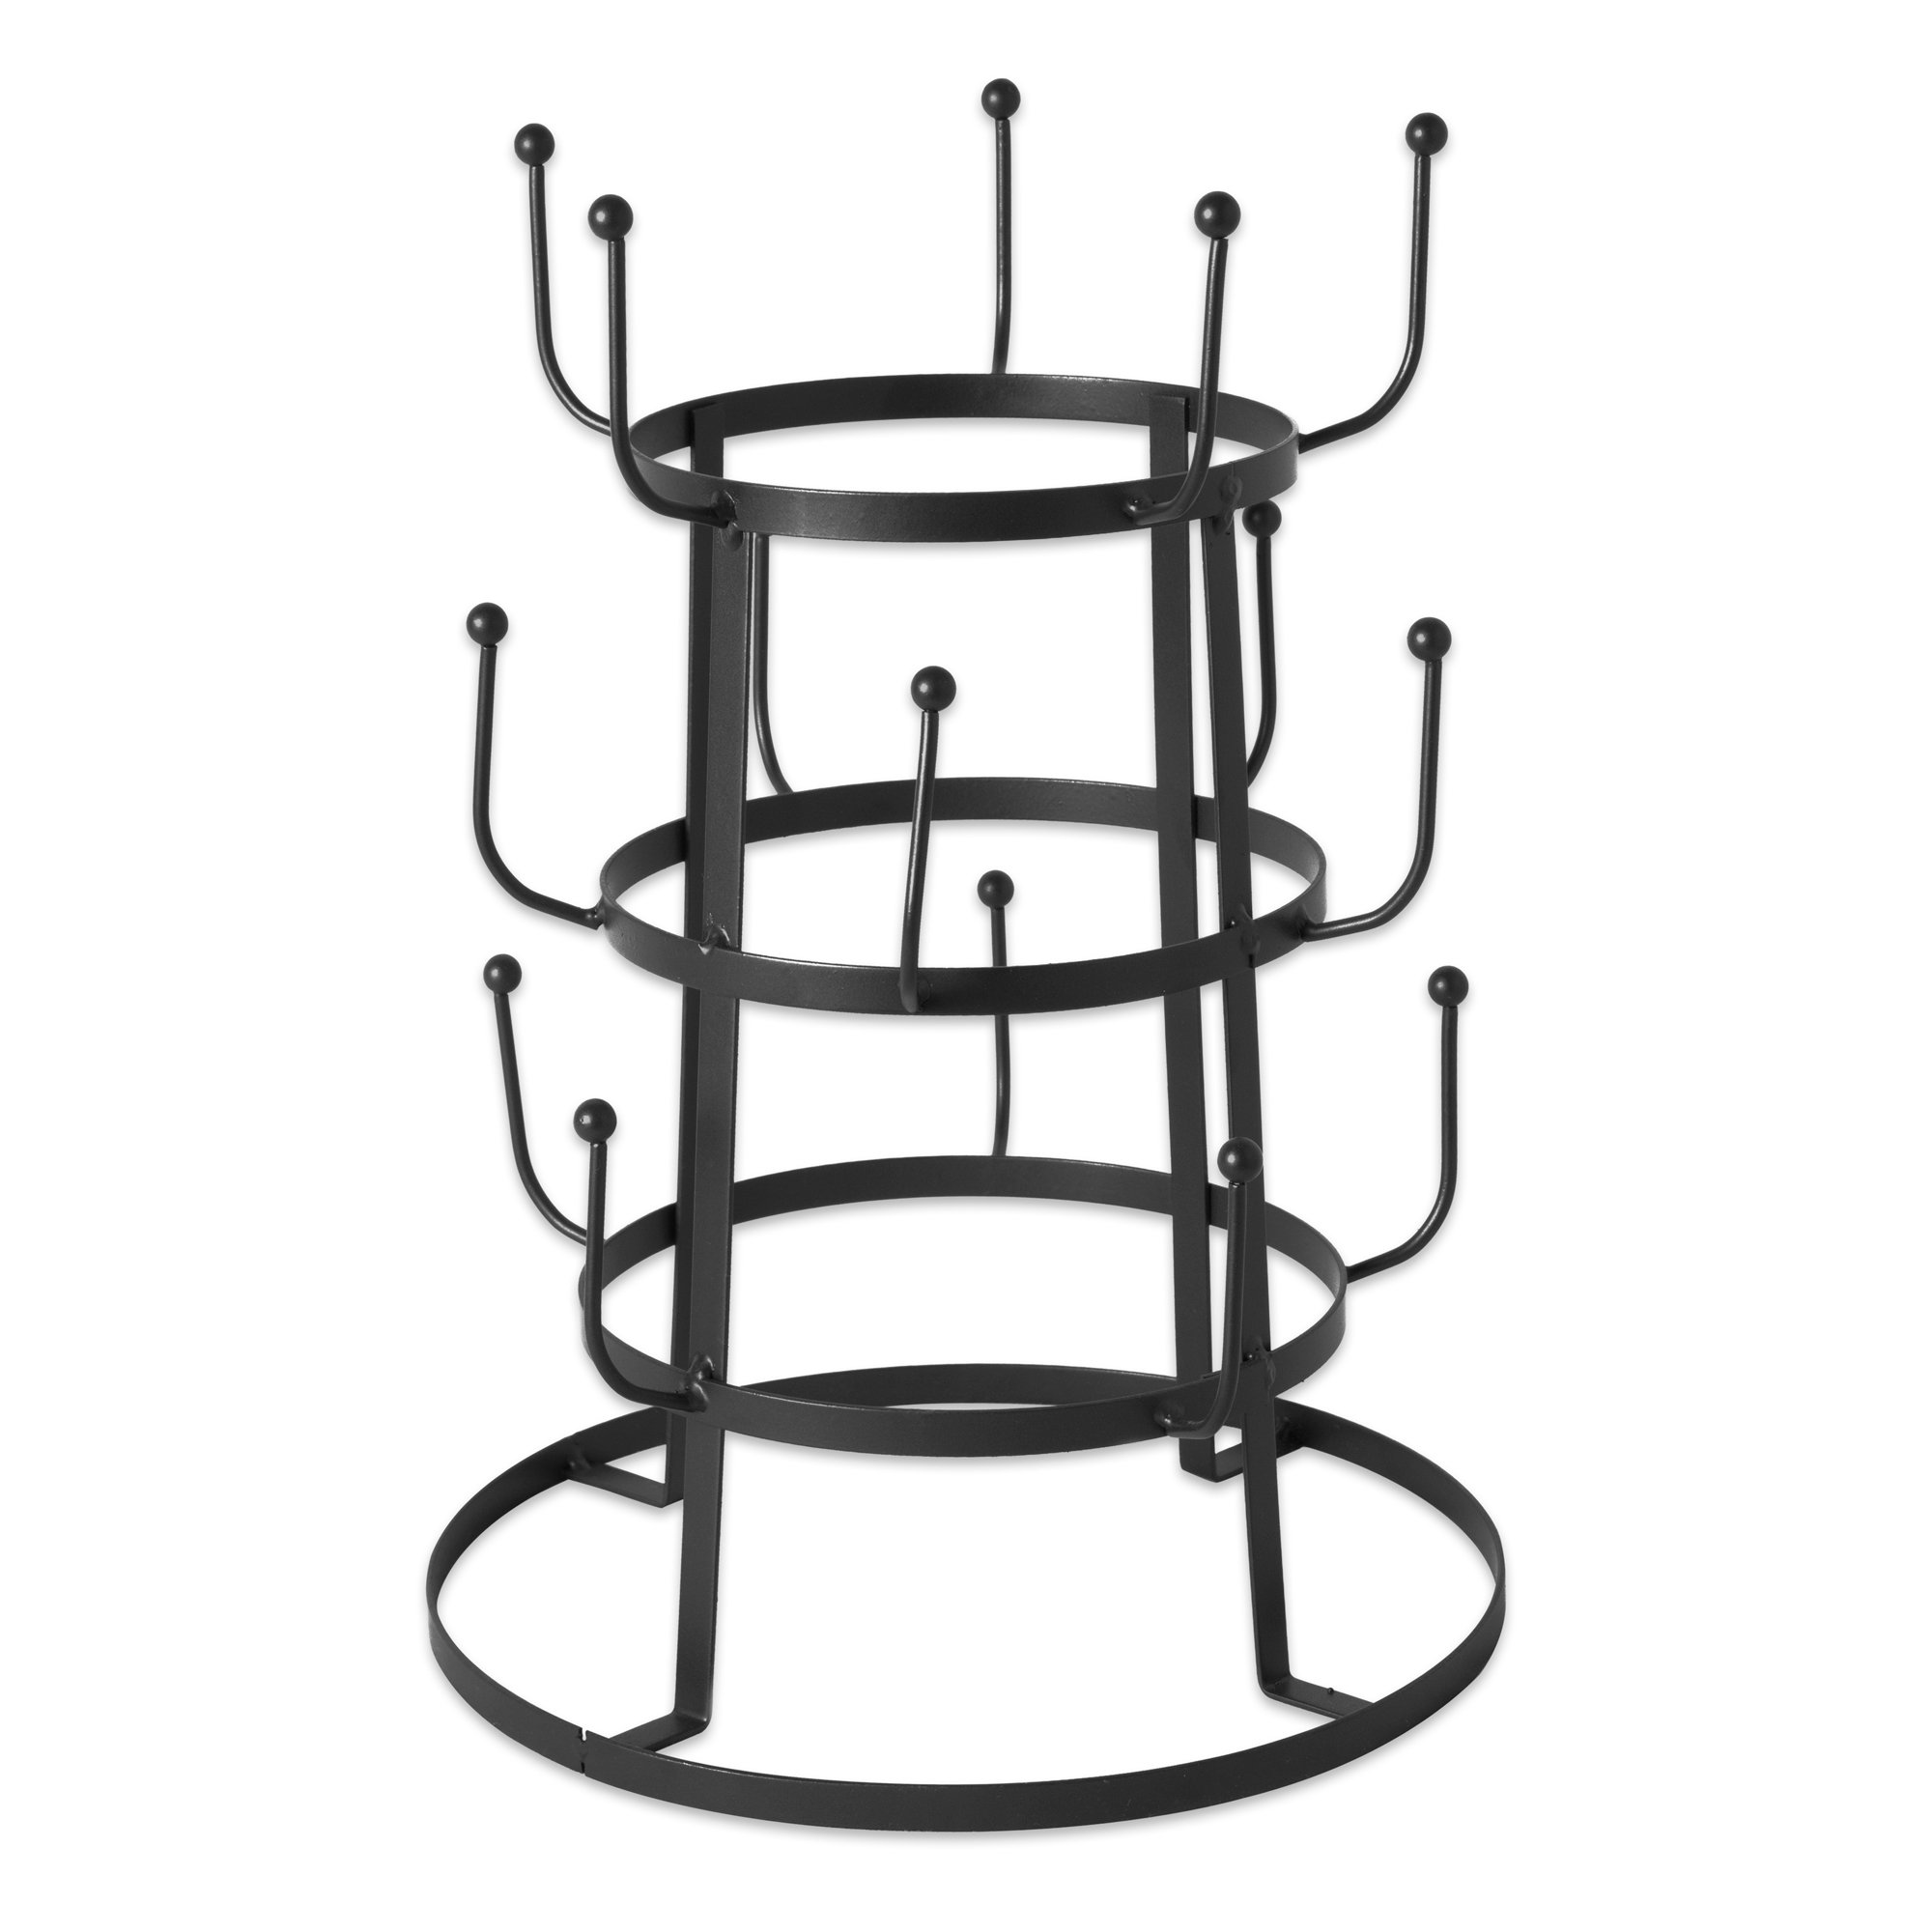 Home Traditions 3 Tier Countertop or Pantry Vintage Metal Wire Tree Stand for Coffee Mugs, Glasses, and Cups, 15 Mug Capacity, Black by DII